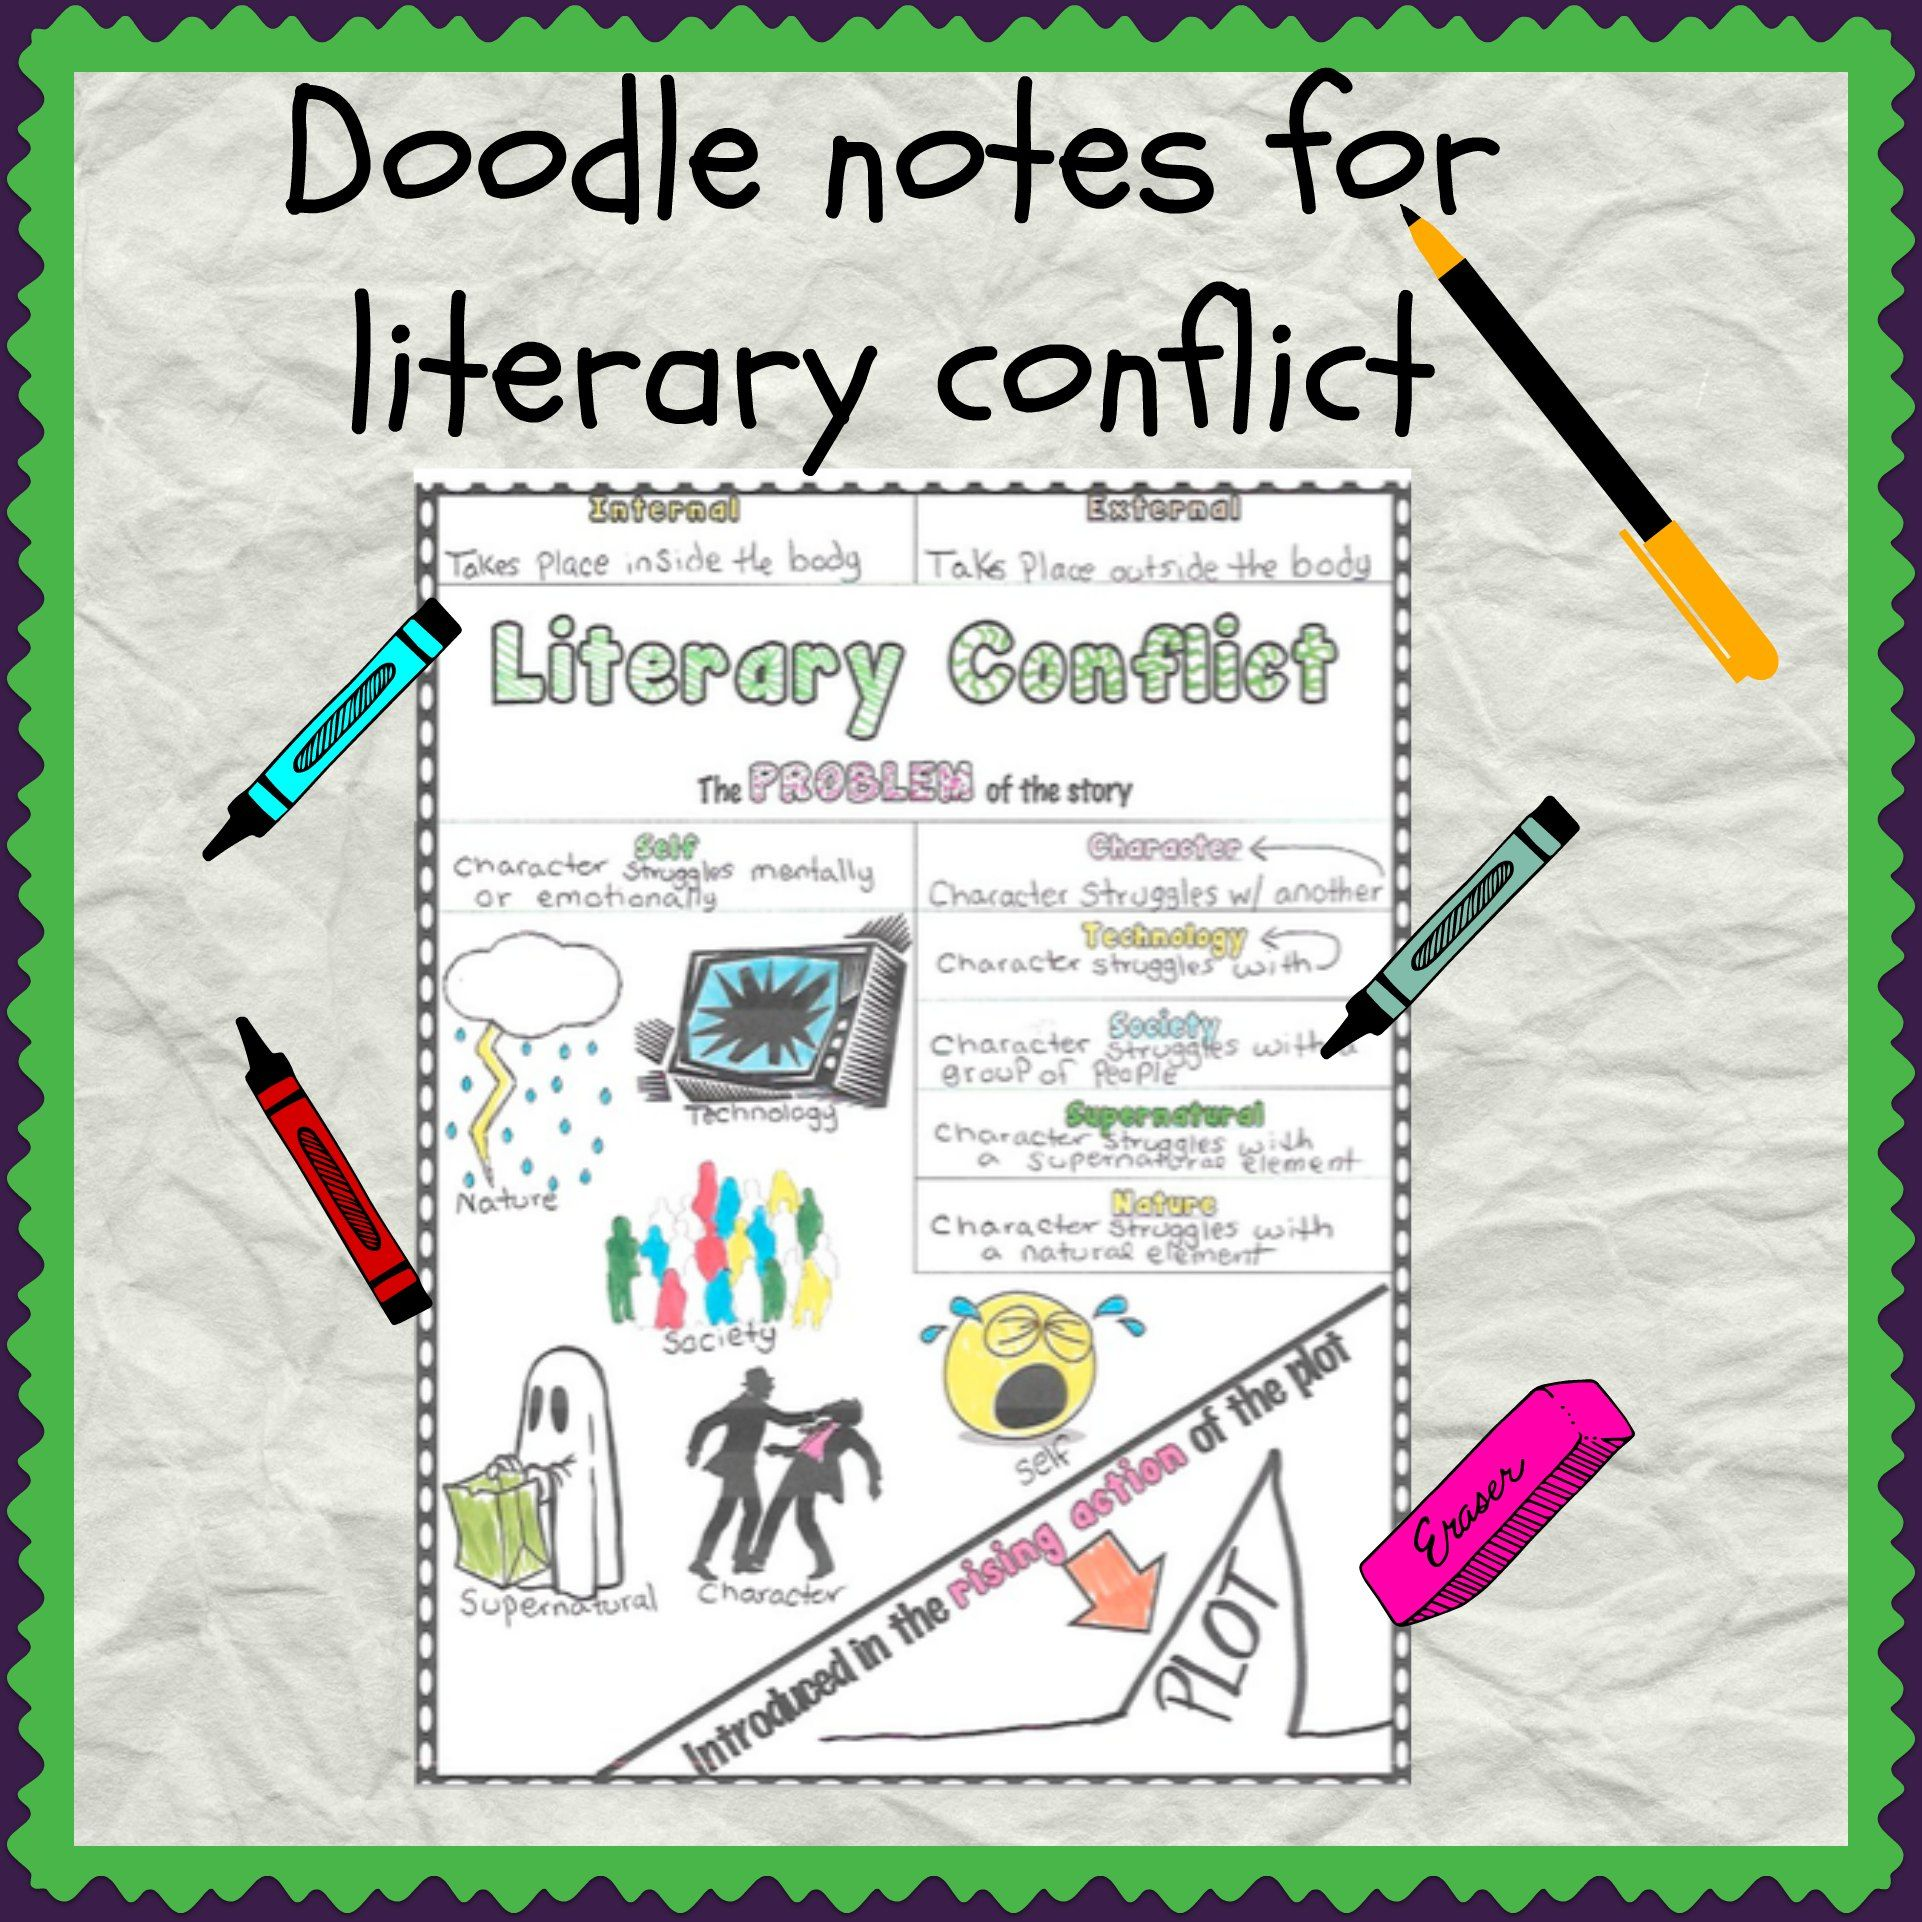 English Cheat Sheet Doodle Notes Literary Conflict Doodle Notes